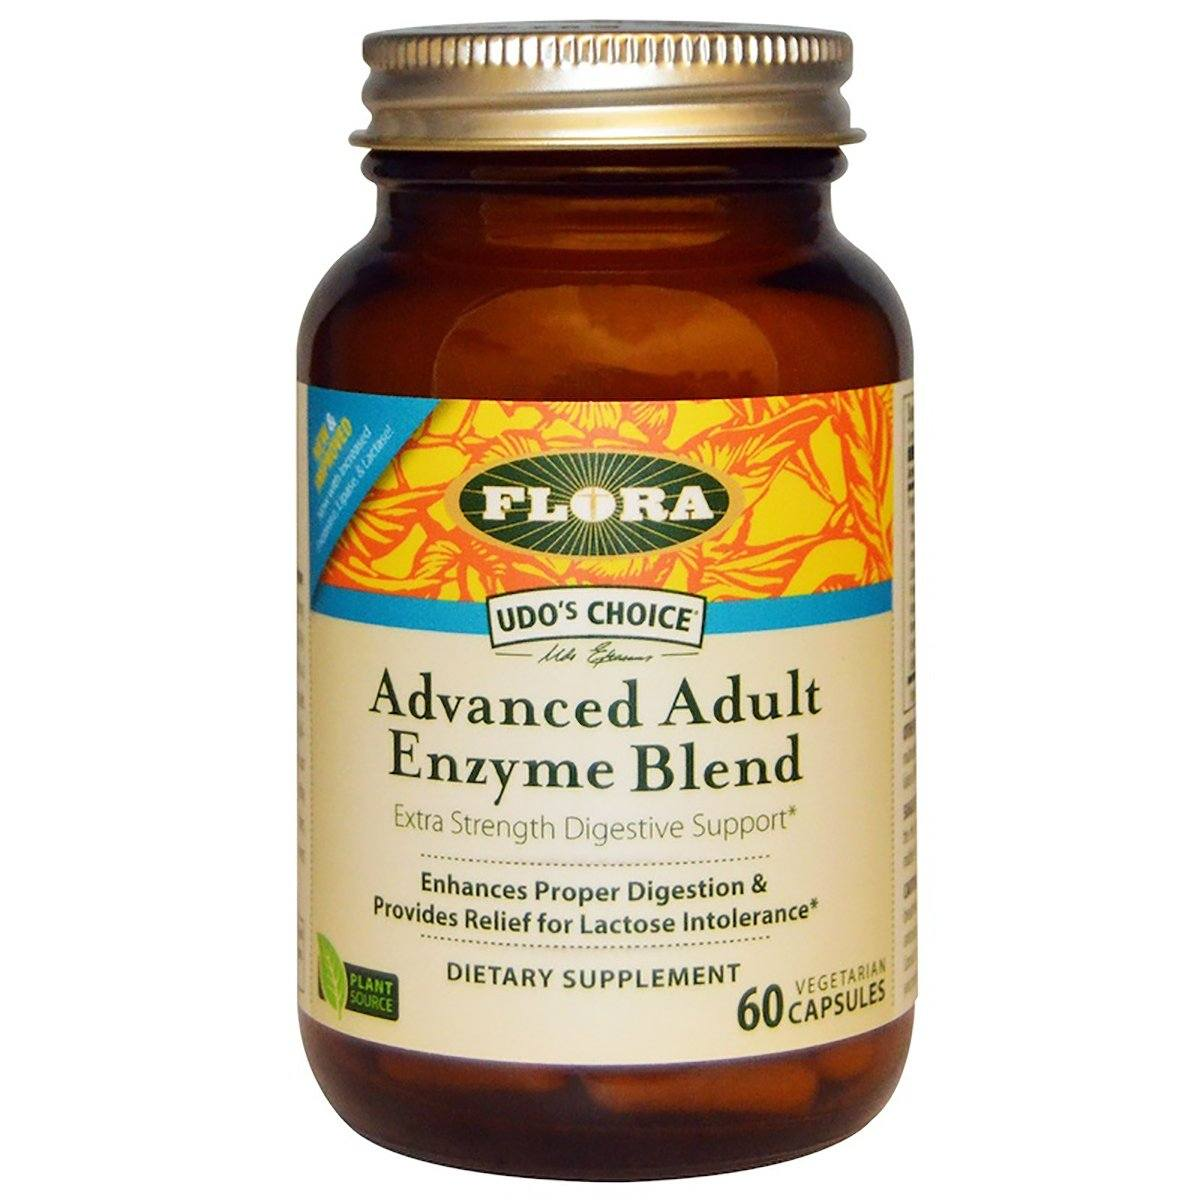 Flora (Udo's Choice) Udo's Choice Advanced Adult Enzyme Blend 60 Capsules Digestive Health / Probiotics Flora (Udo's Choice)  (1058630369323)